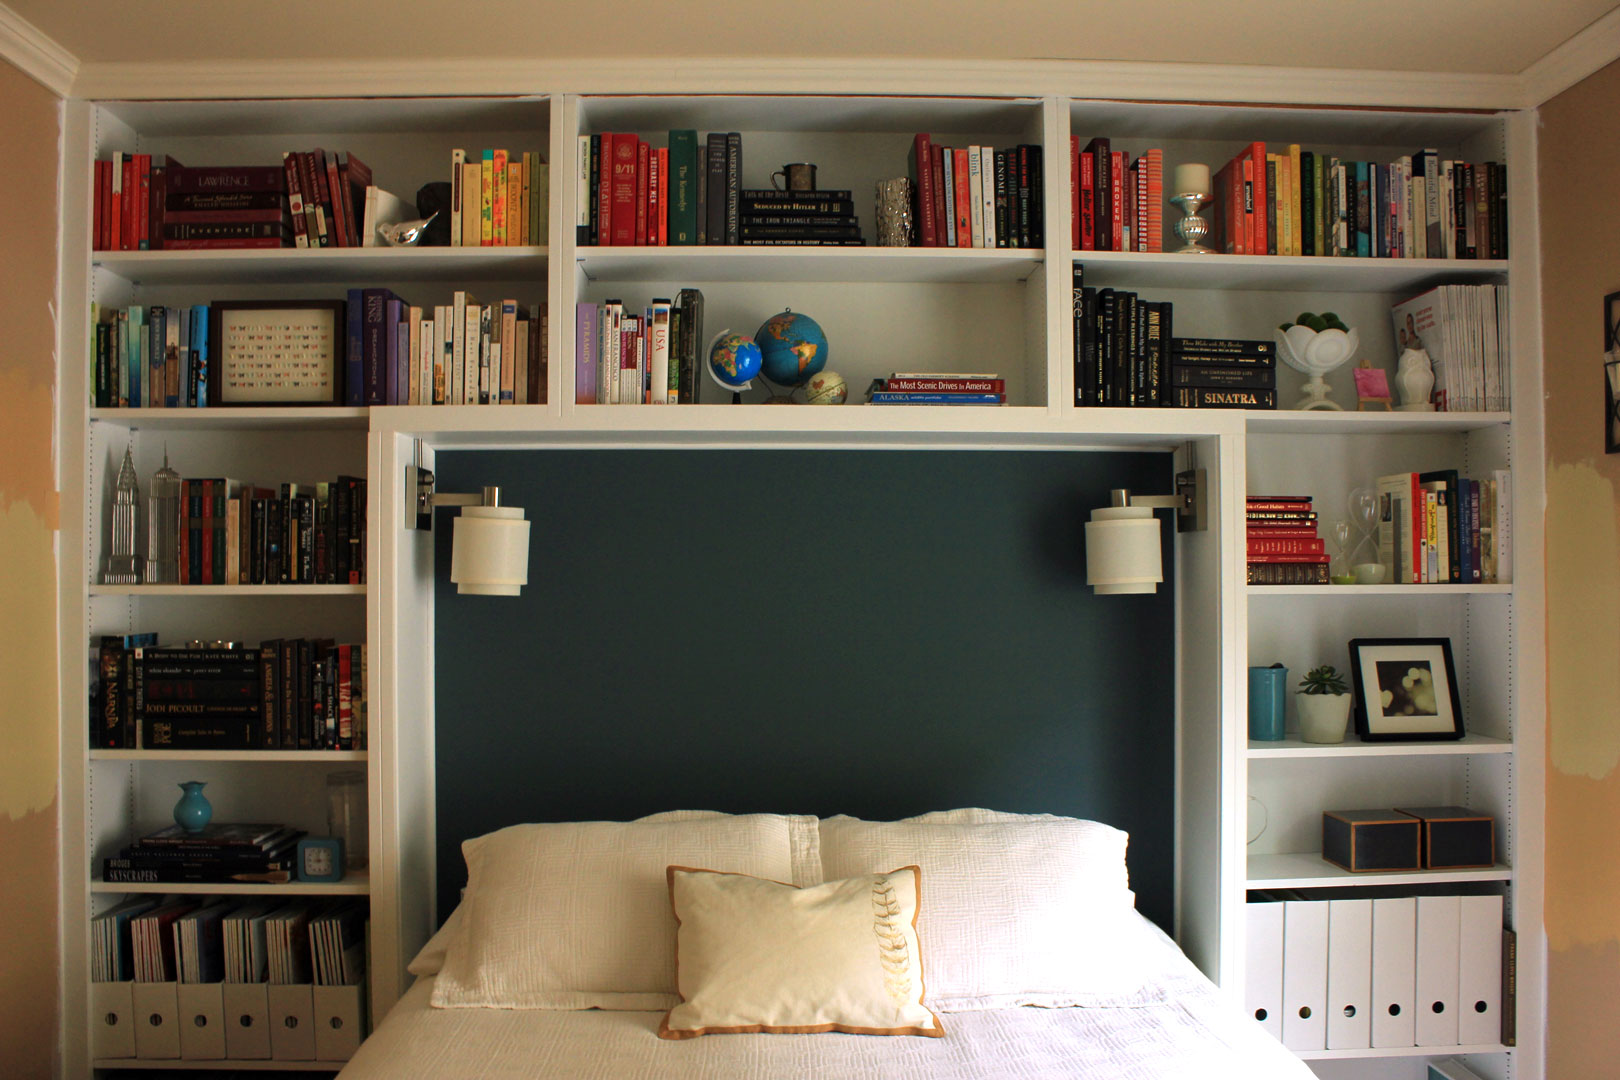 How To Build A Bookshelf Headboard